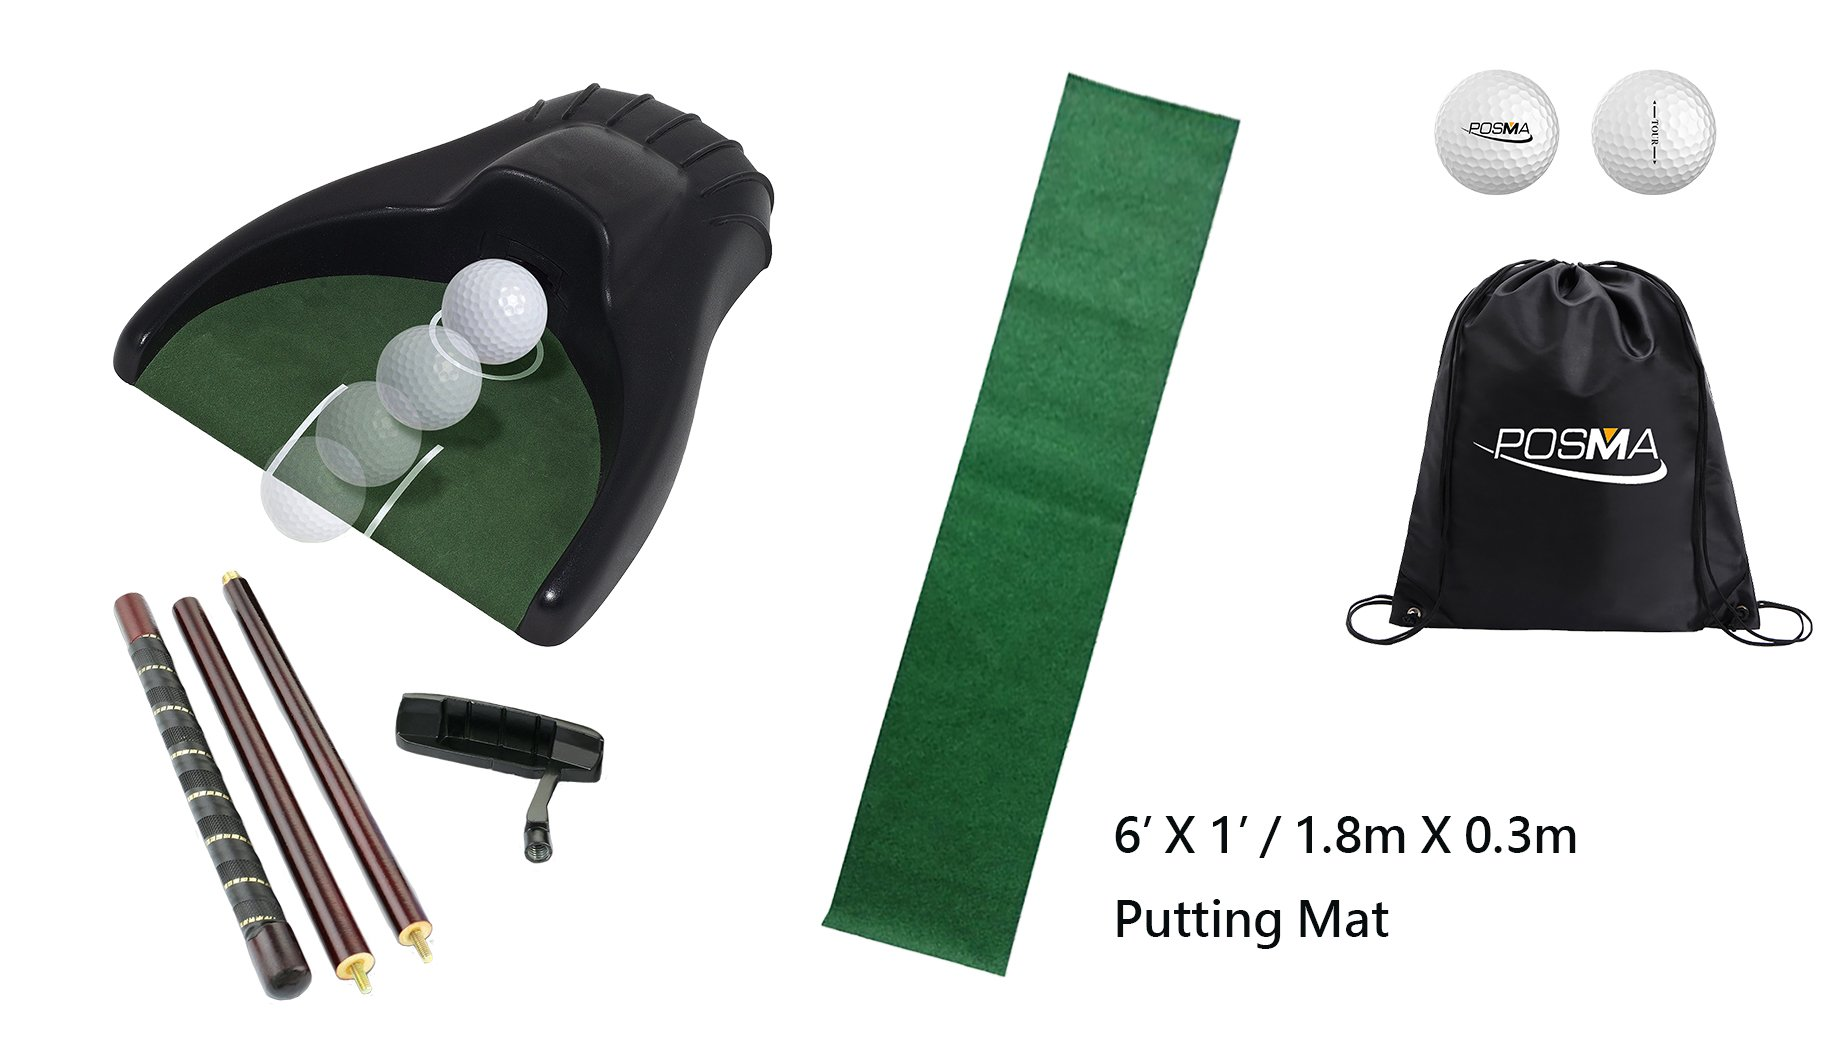 POSMA PG150D Golf Putter Training Putting Trainer Bundle Gift Set with Kickback Putt Cup, 6ft x 1ft Putt Mat, Detachable 4-section putter, 2pcs Tour Ball and Cinch Sack Carry Bag by POSMA (Image #1)